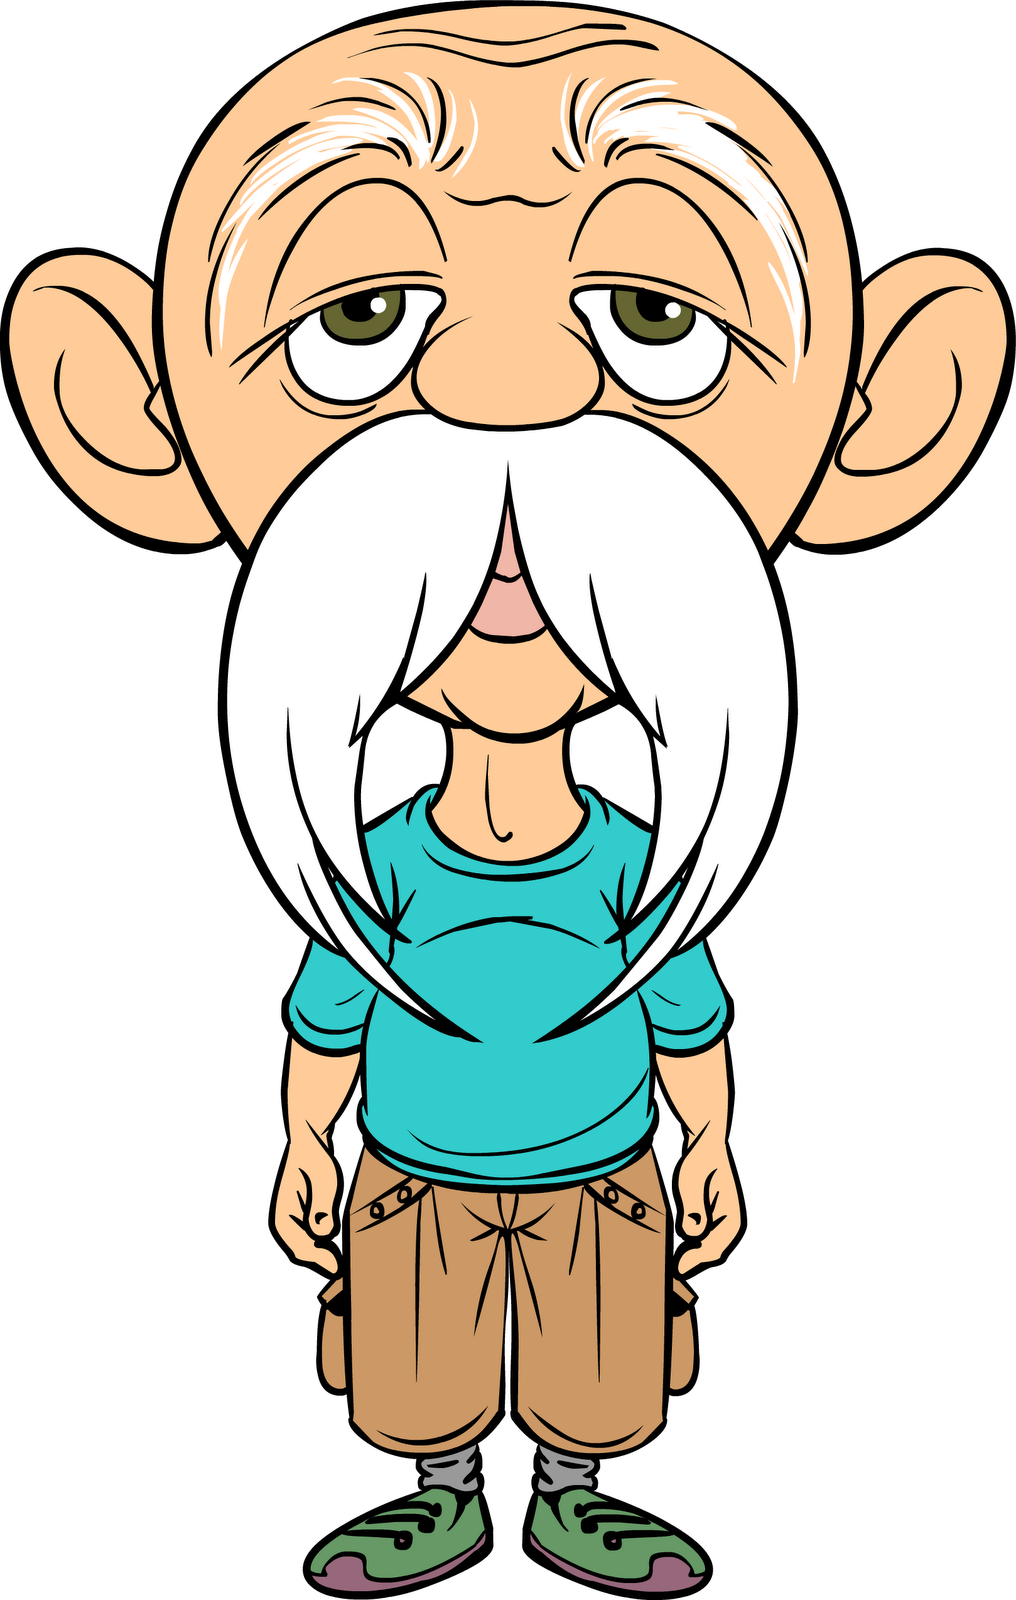 Markers clipart skinny. Old man cartoon szukaj